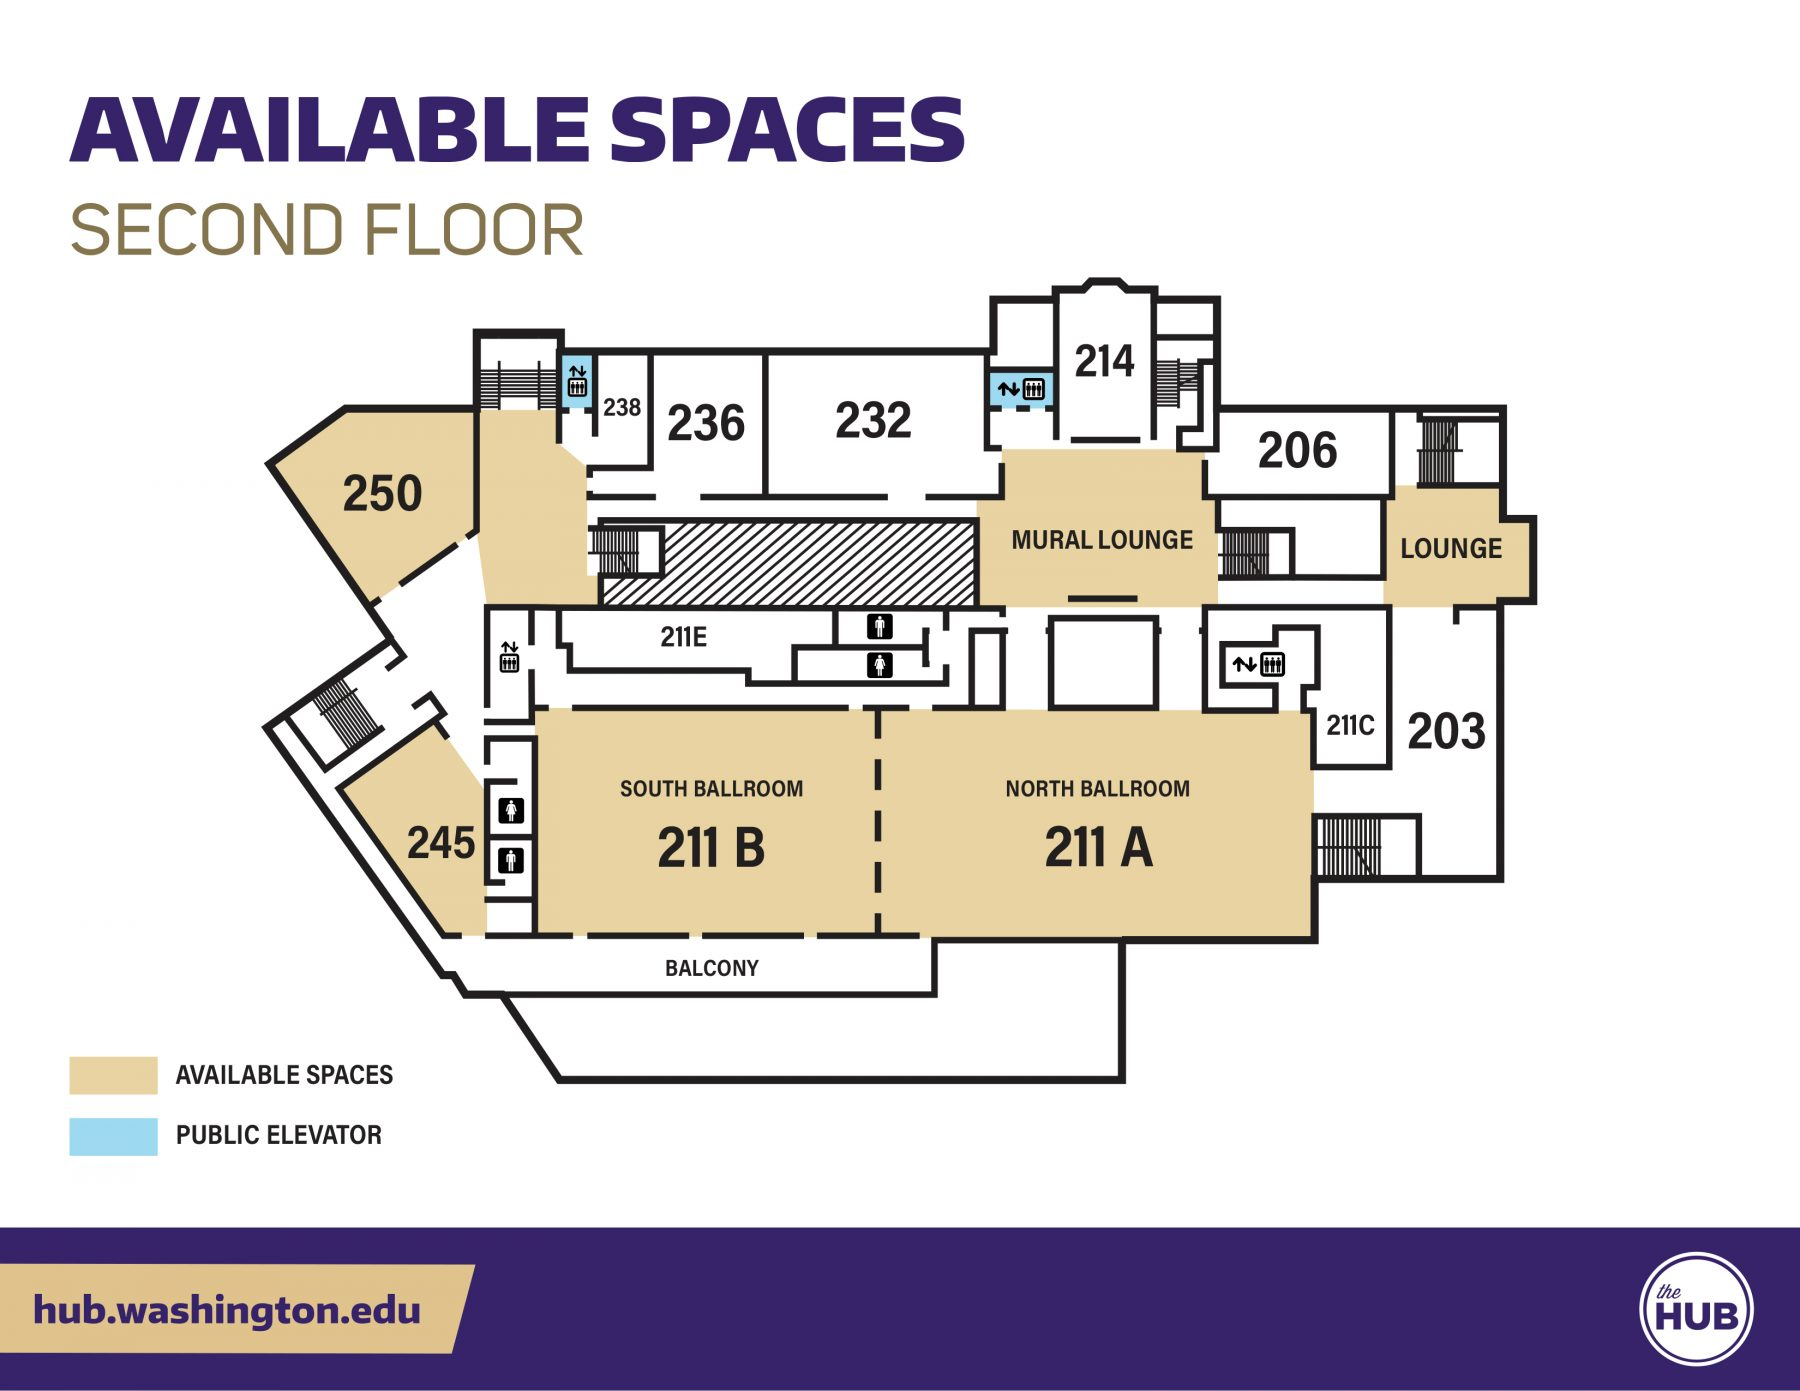 HUB Available Spaces - Second Floor